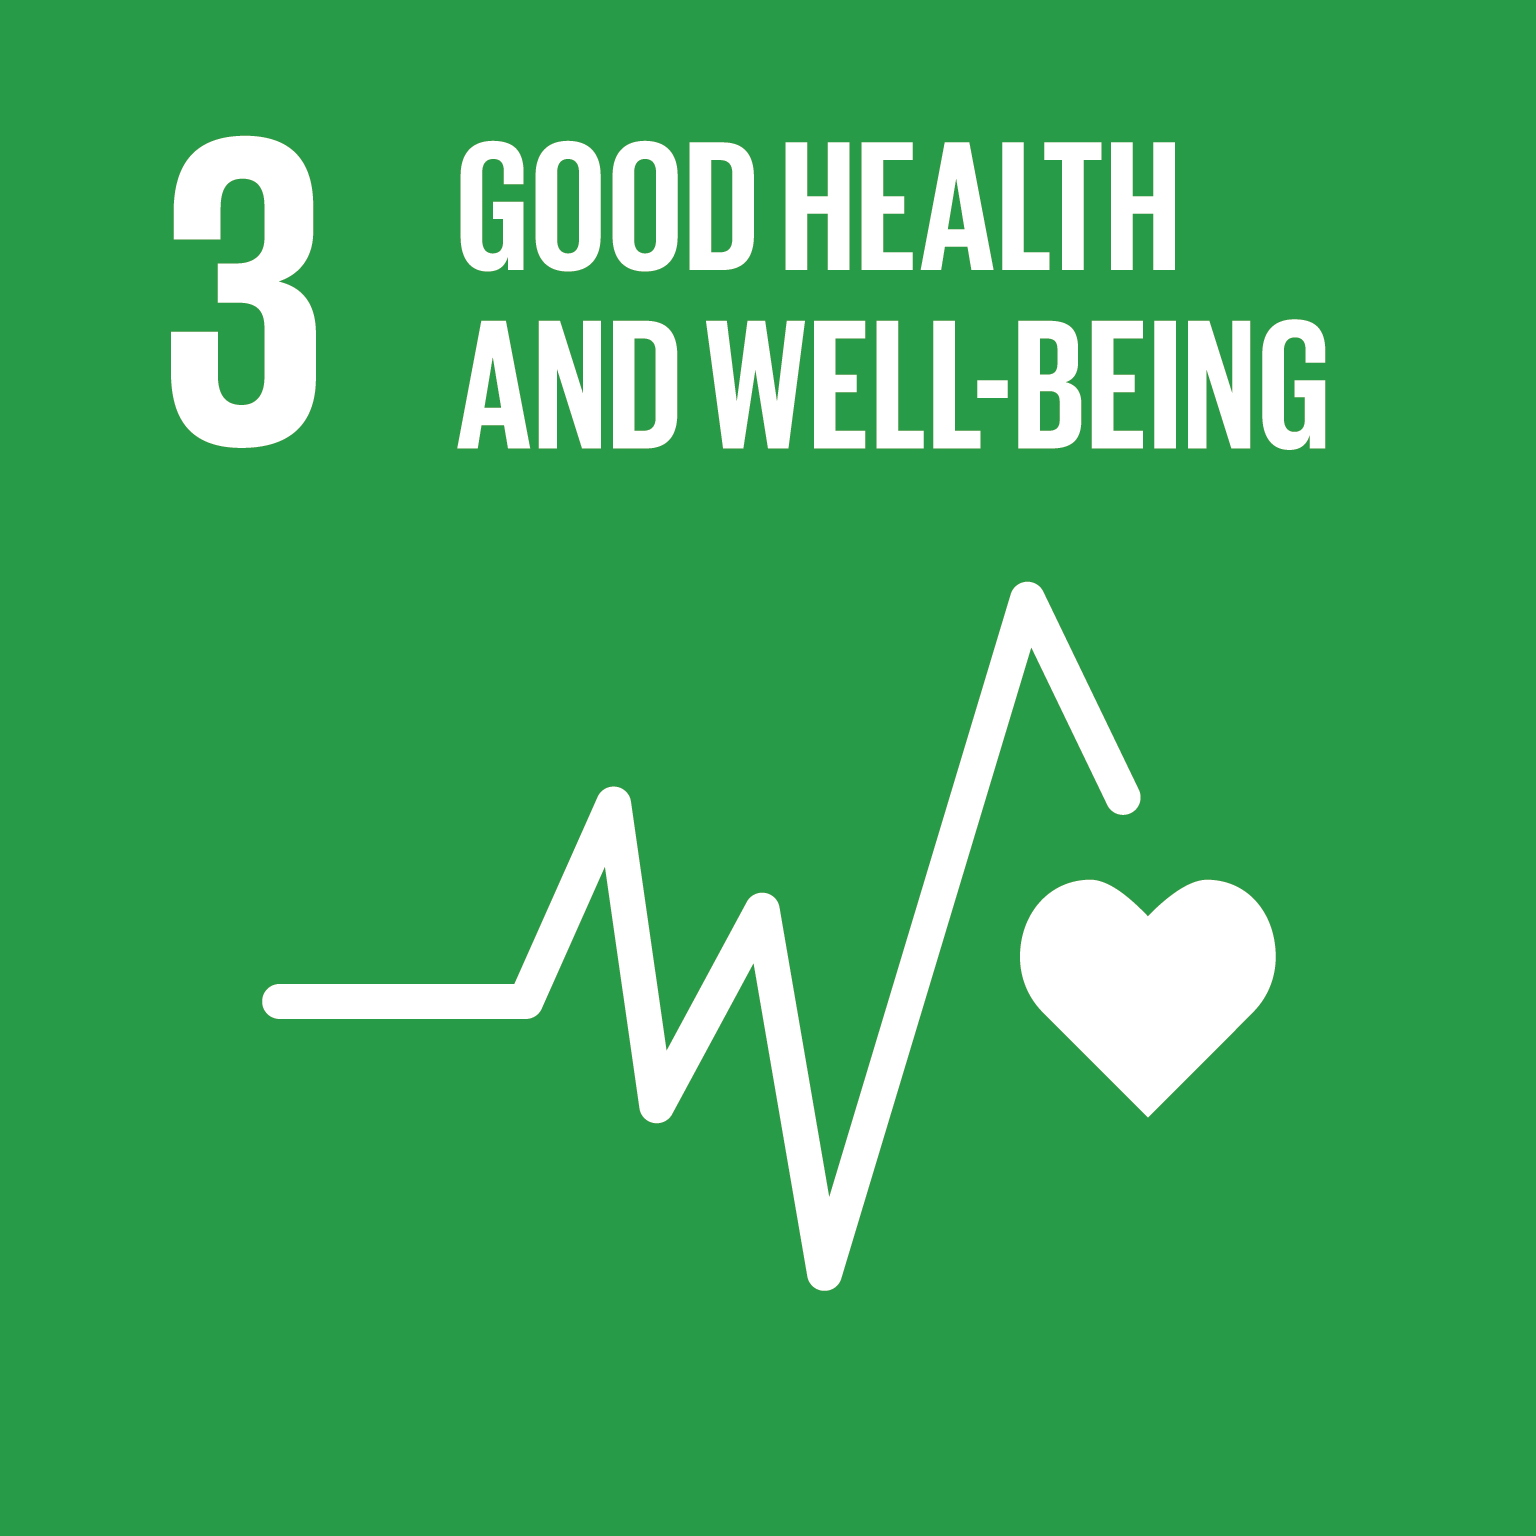 SDG 3 Posters